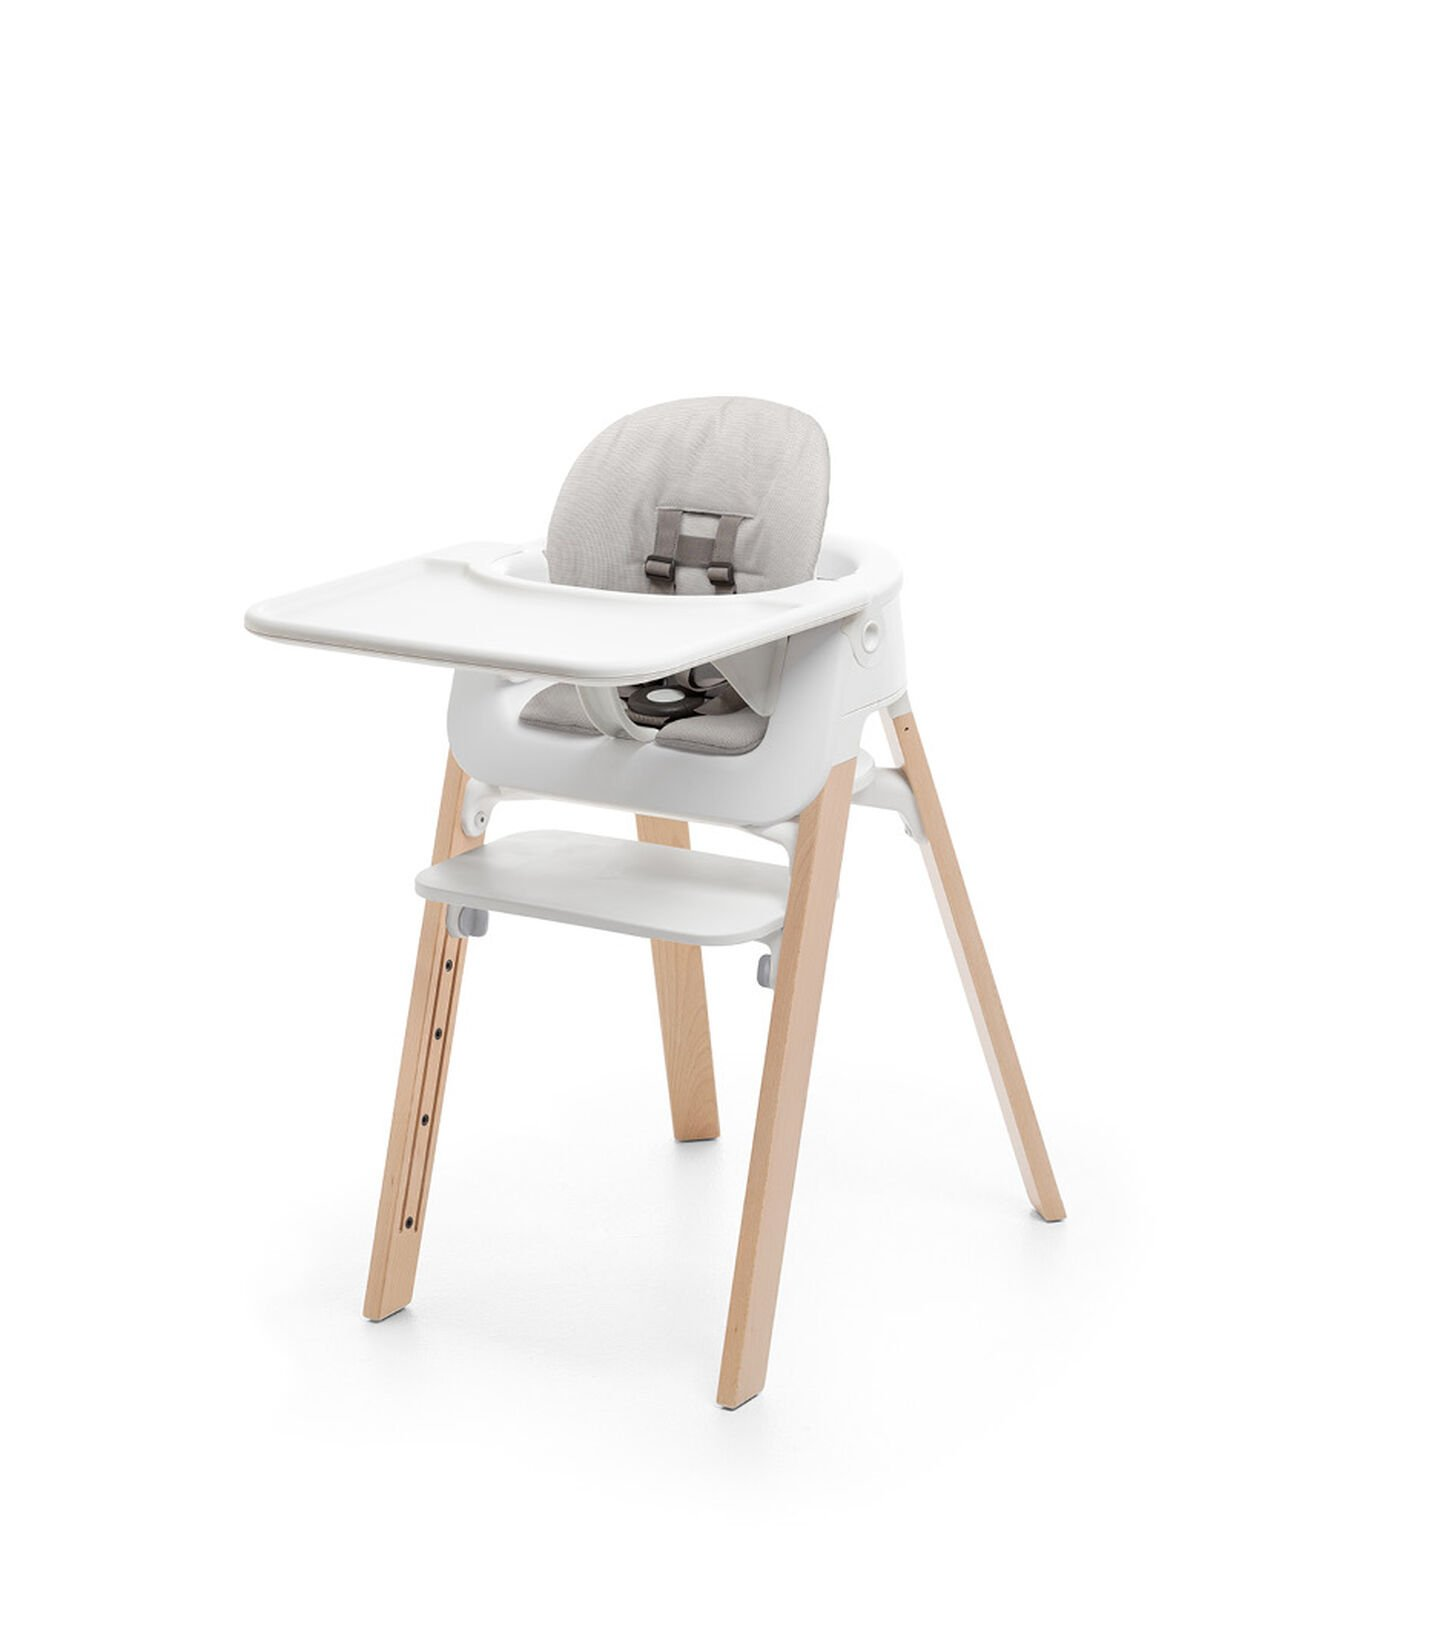 Stokke® Steps™ HC Complete Bundle Nat w White Grey Cushion, White Seat BS Tray-Natural Legs, mainview view 2